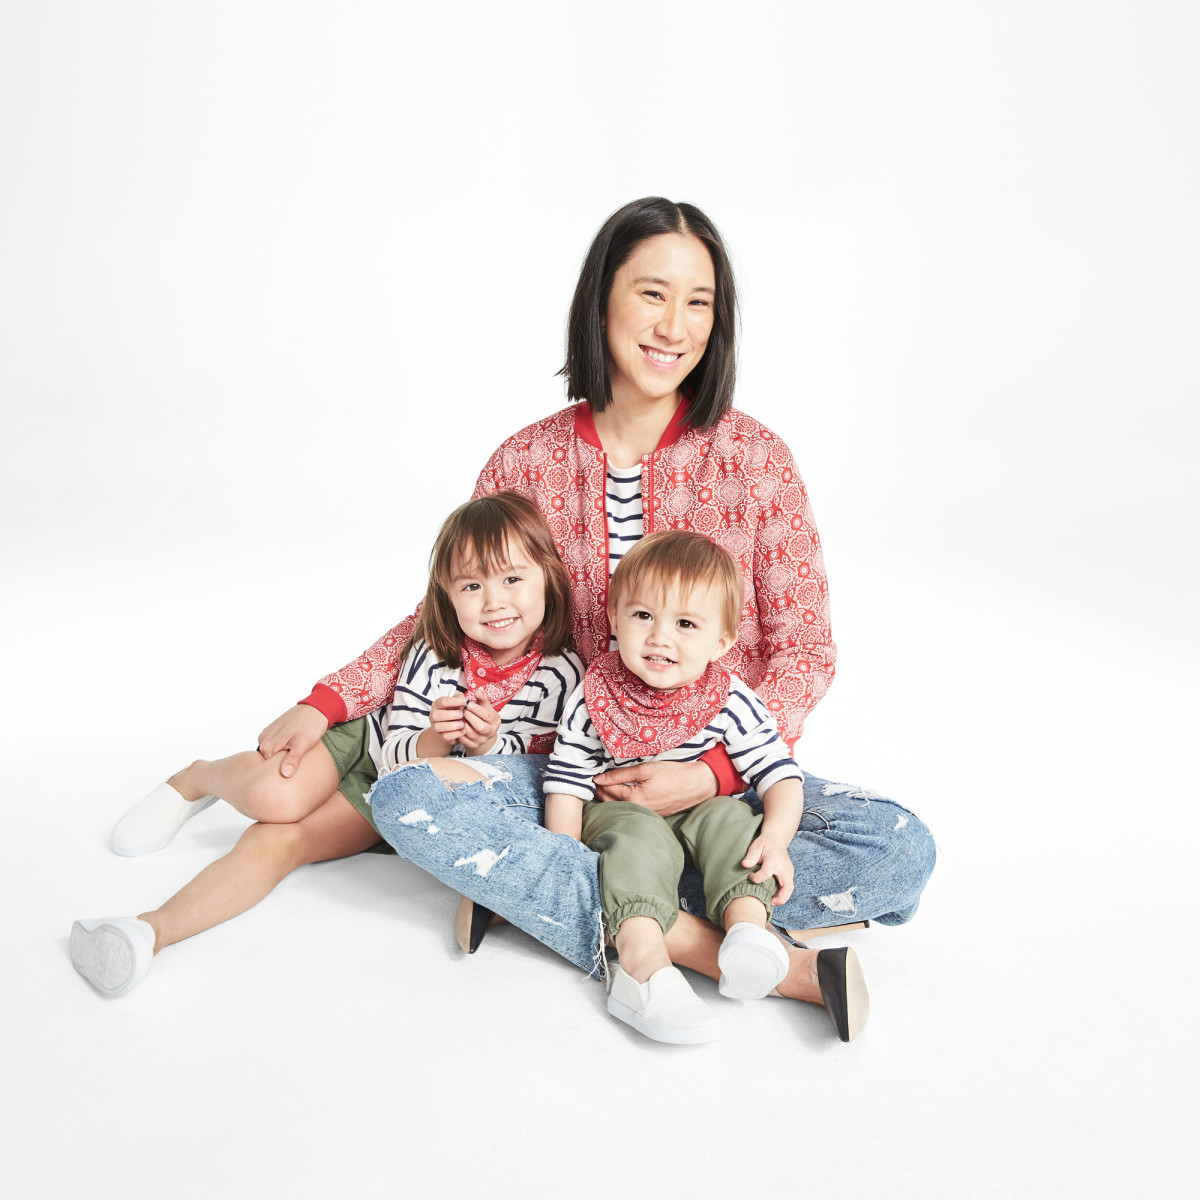 24afb034df0 Eva Chen with her children Ren and Tao in her collection for Janie   Jack.